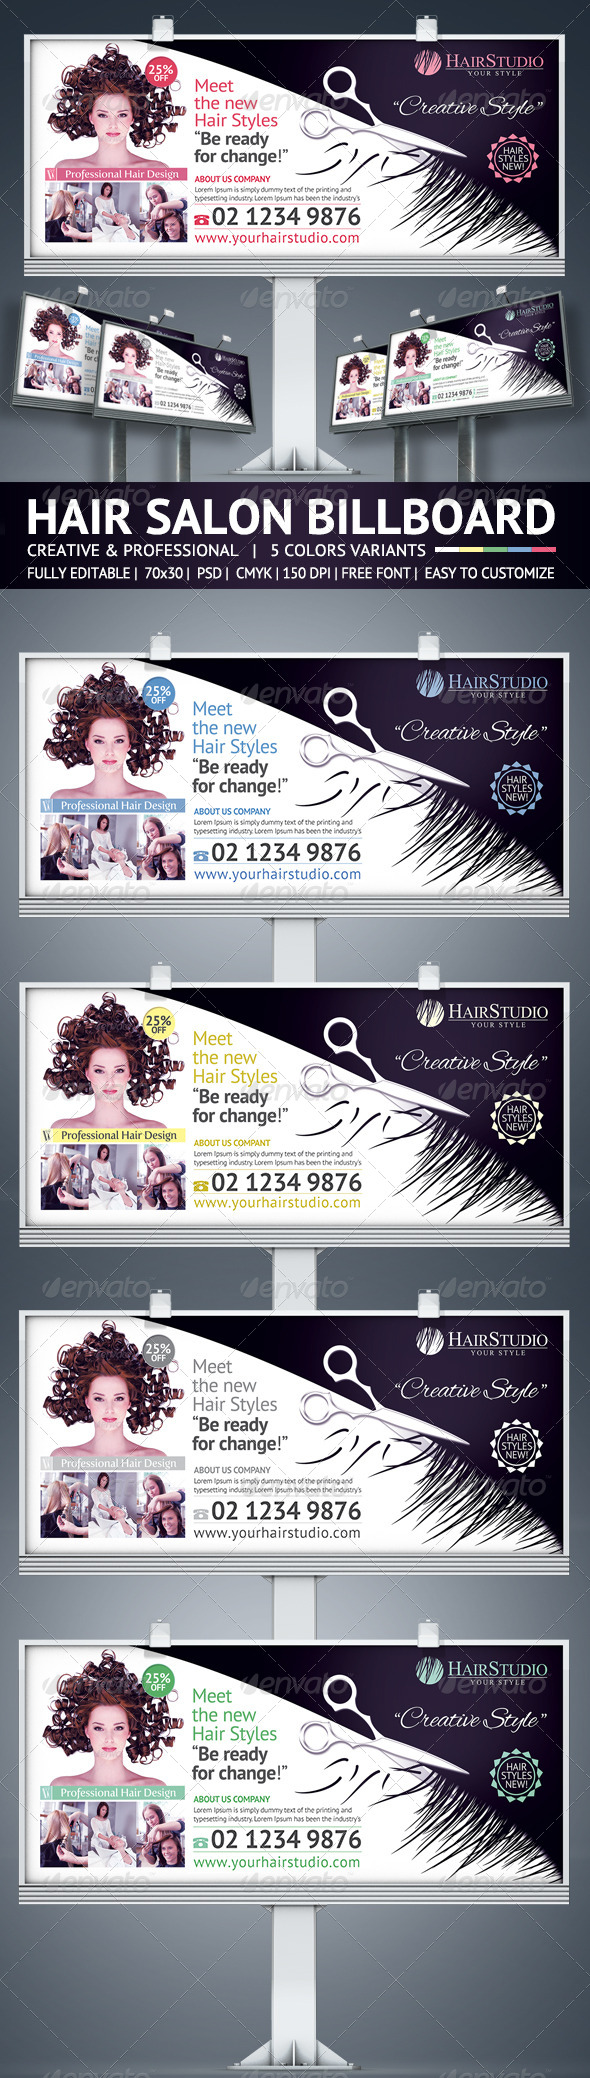 GraphicRiver Hair Salon Billboard 5816762